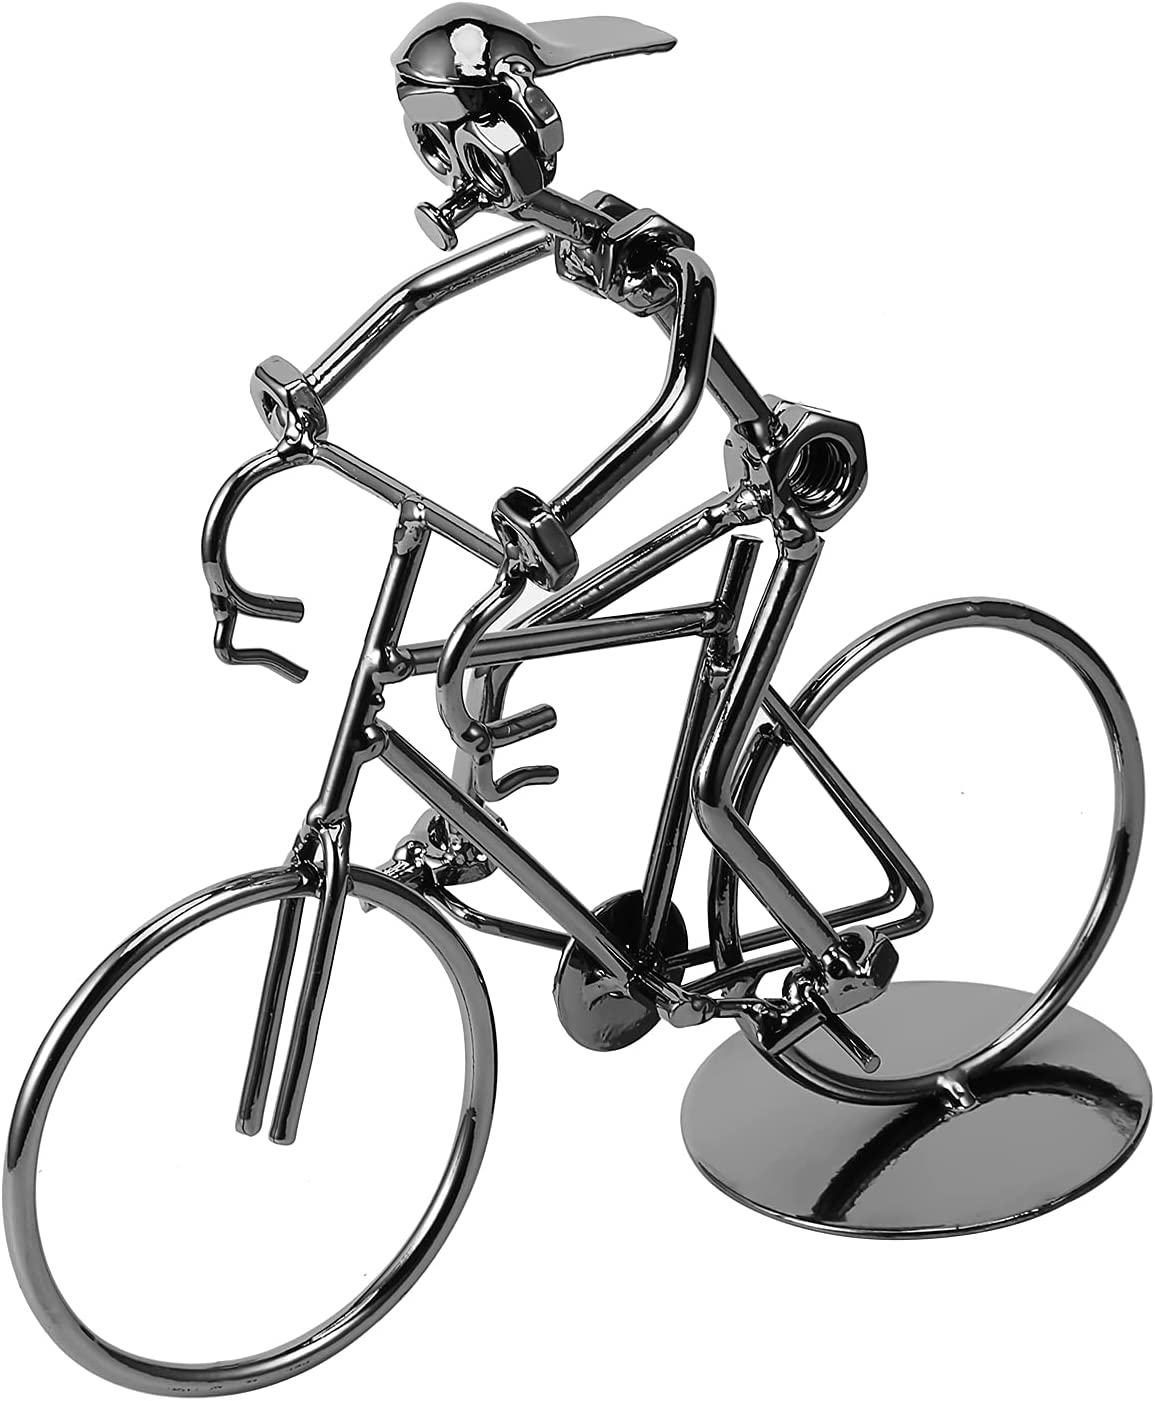 Lulonpon Vintage Iron Bicycle Model, Handcrafted Bike Model, Collectible Art for Bicycle Lovers Home Decor Ornaments or Office Vintage, Decorative Bicycle Model Great for Gifts (Metallic3)